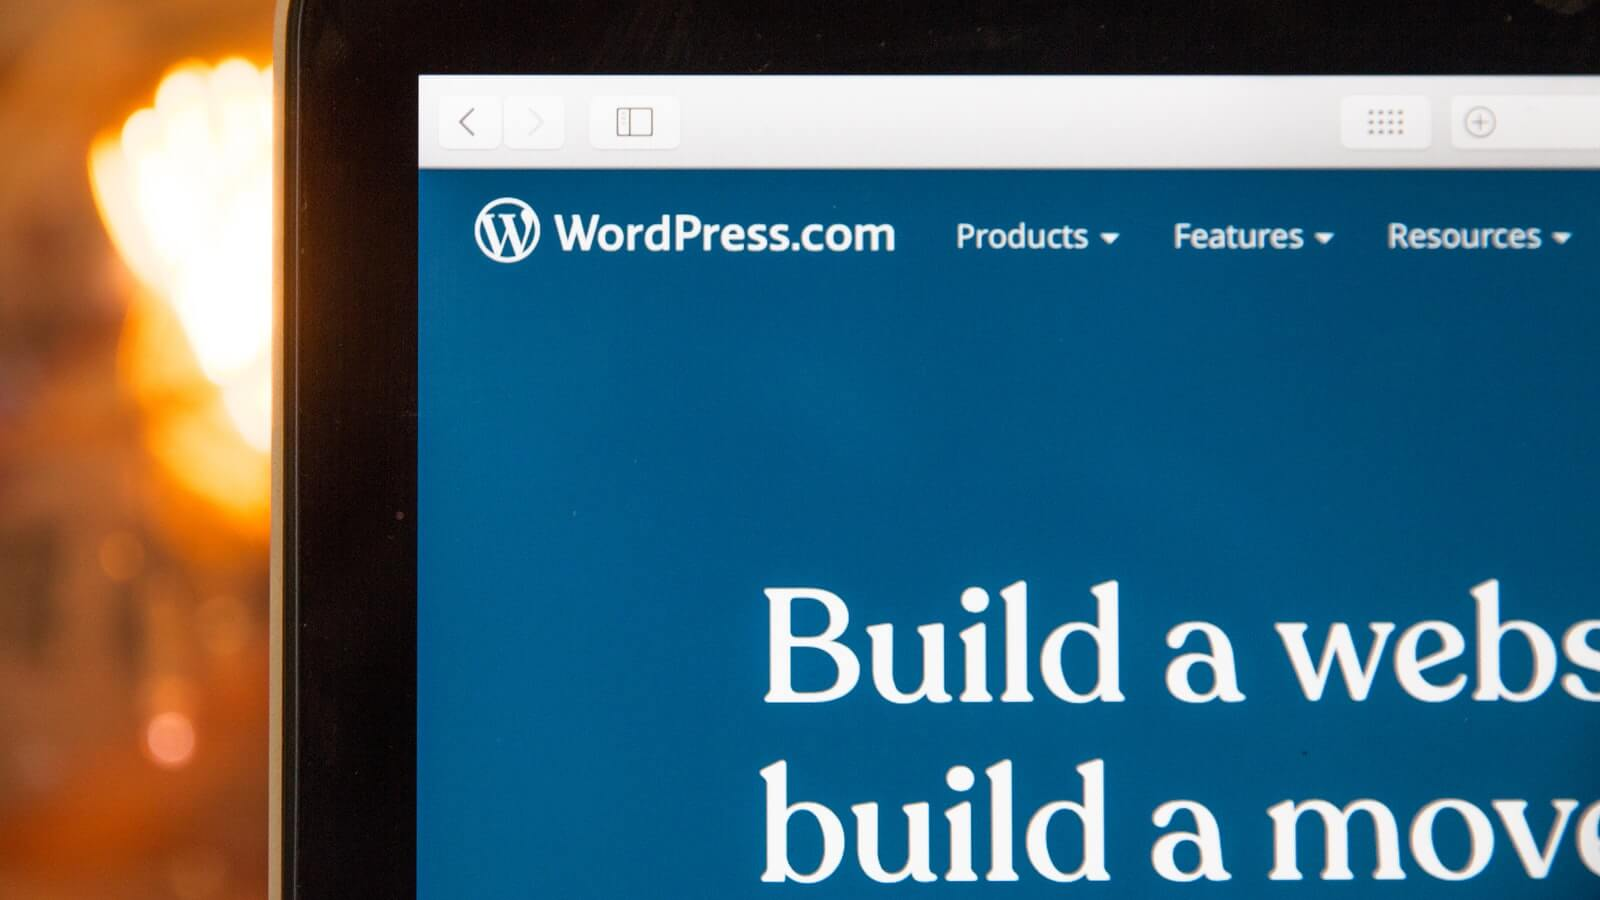 Useful 7 WordPress Design Tips on Making a Mobile Compatible Website